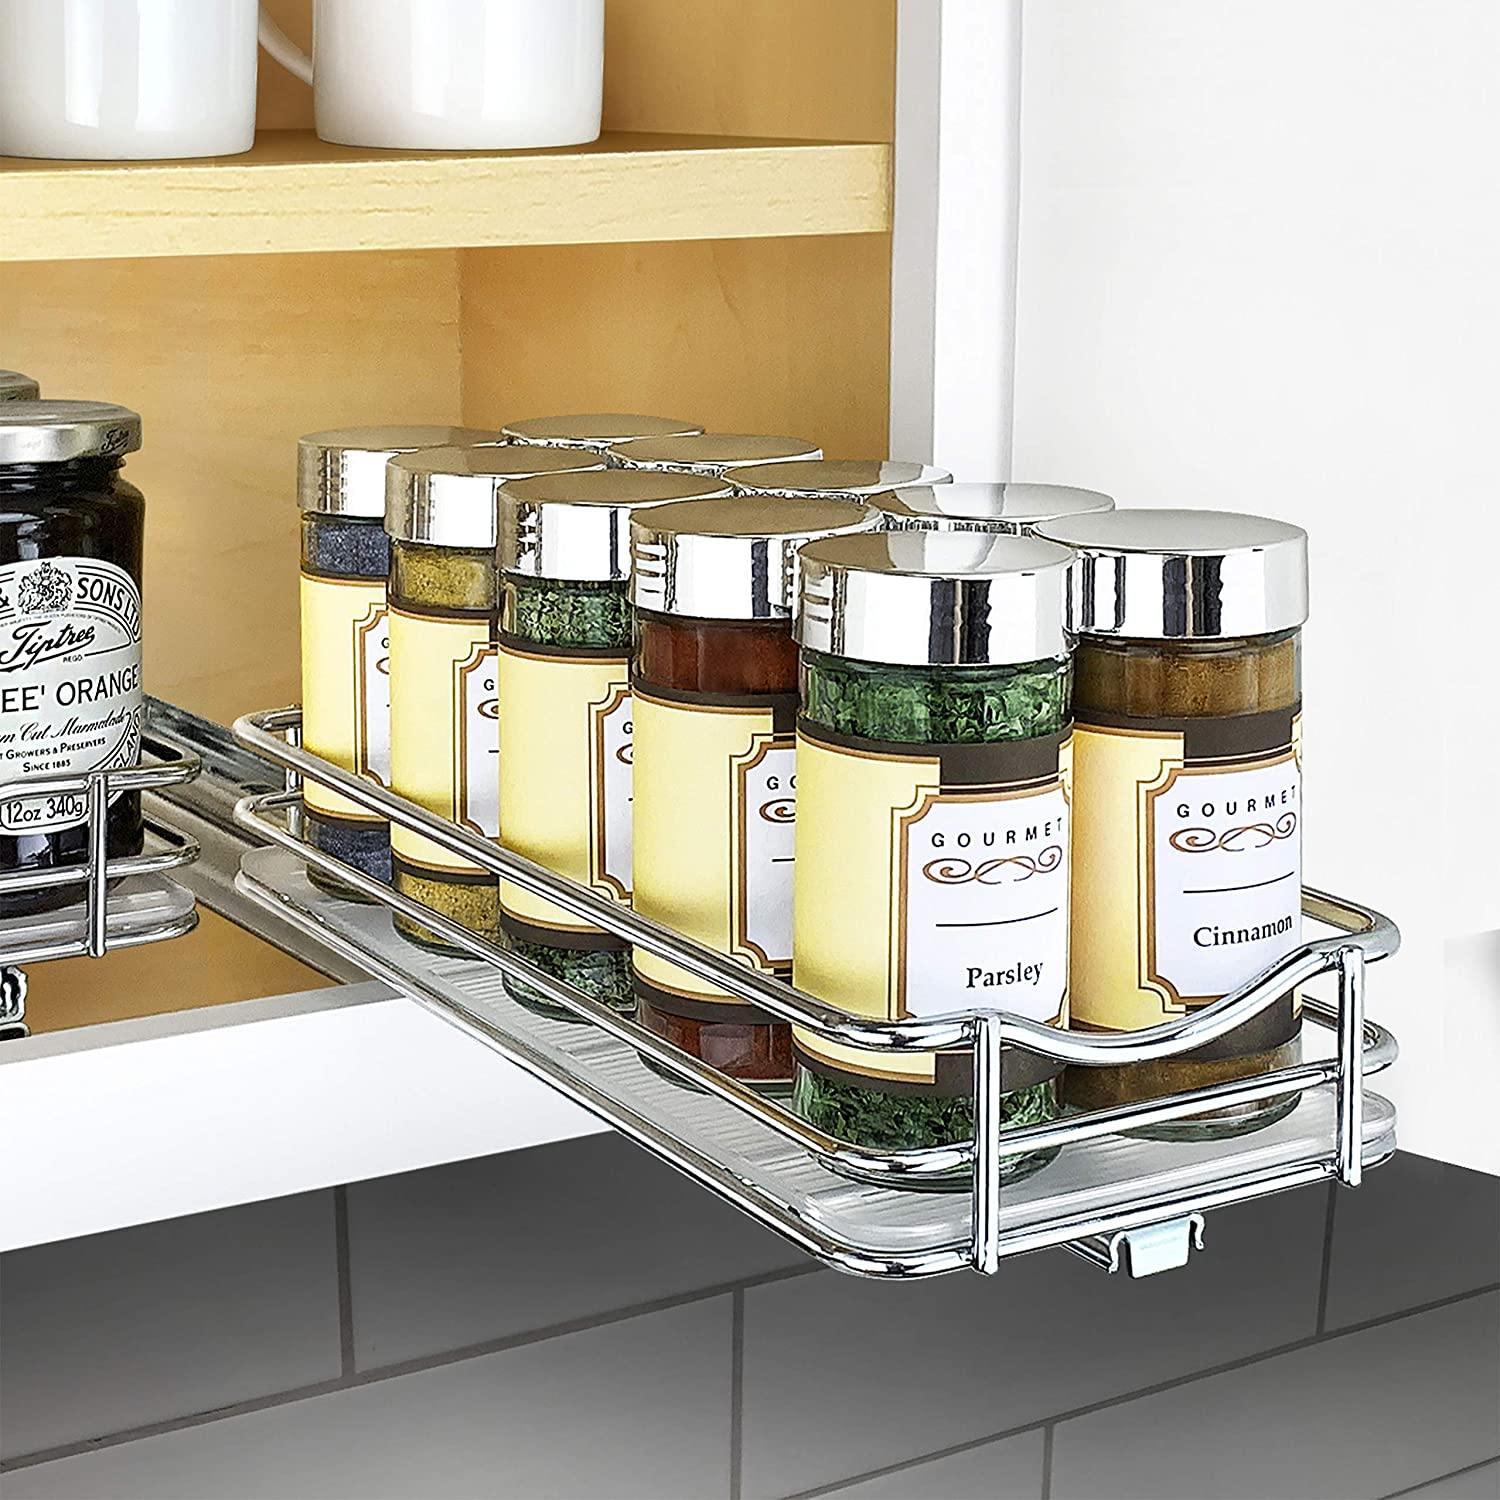 """Lynk Professional 430421DS Slide Out Spice Rack Cabinet Organizer, 4"""" Wide Single, Chrome"""